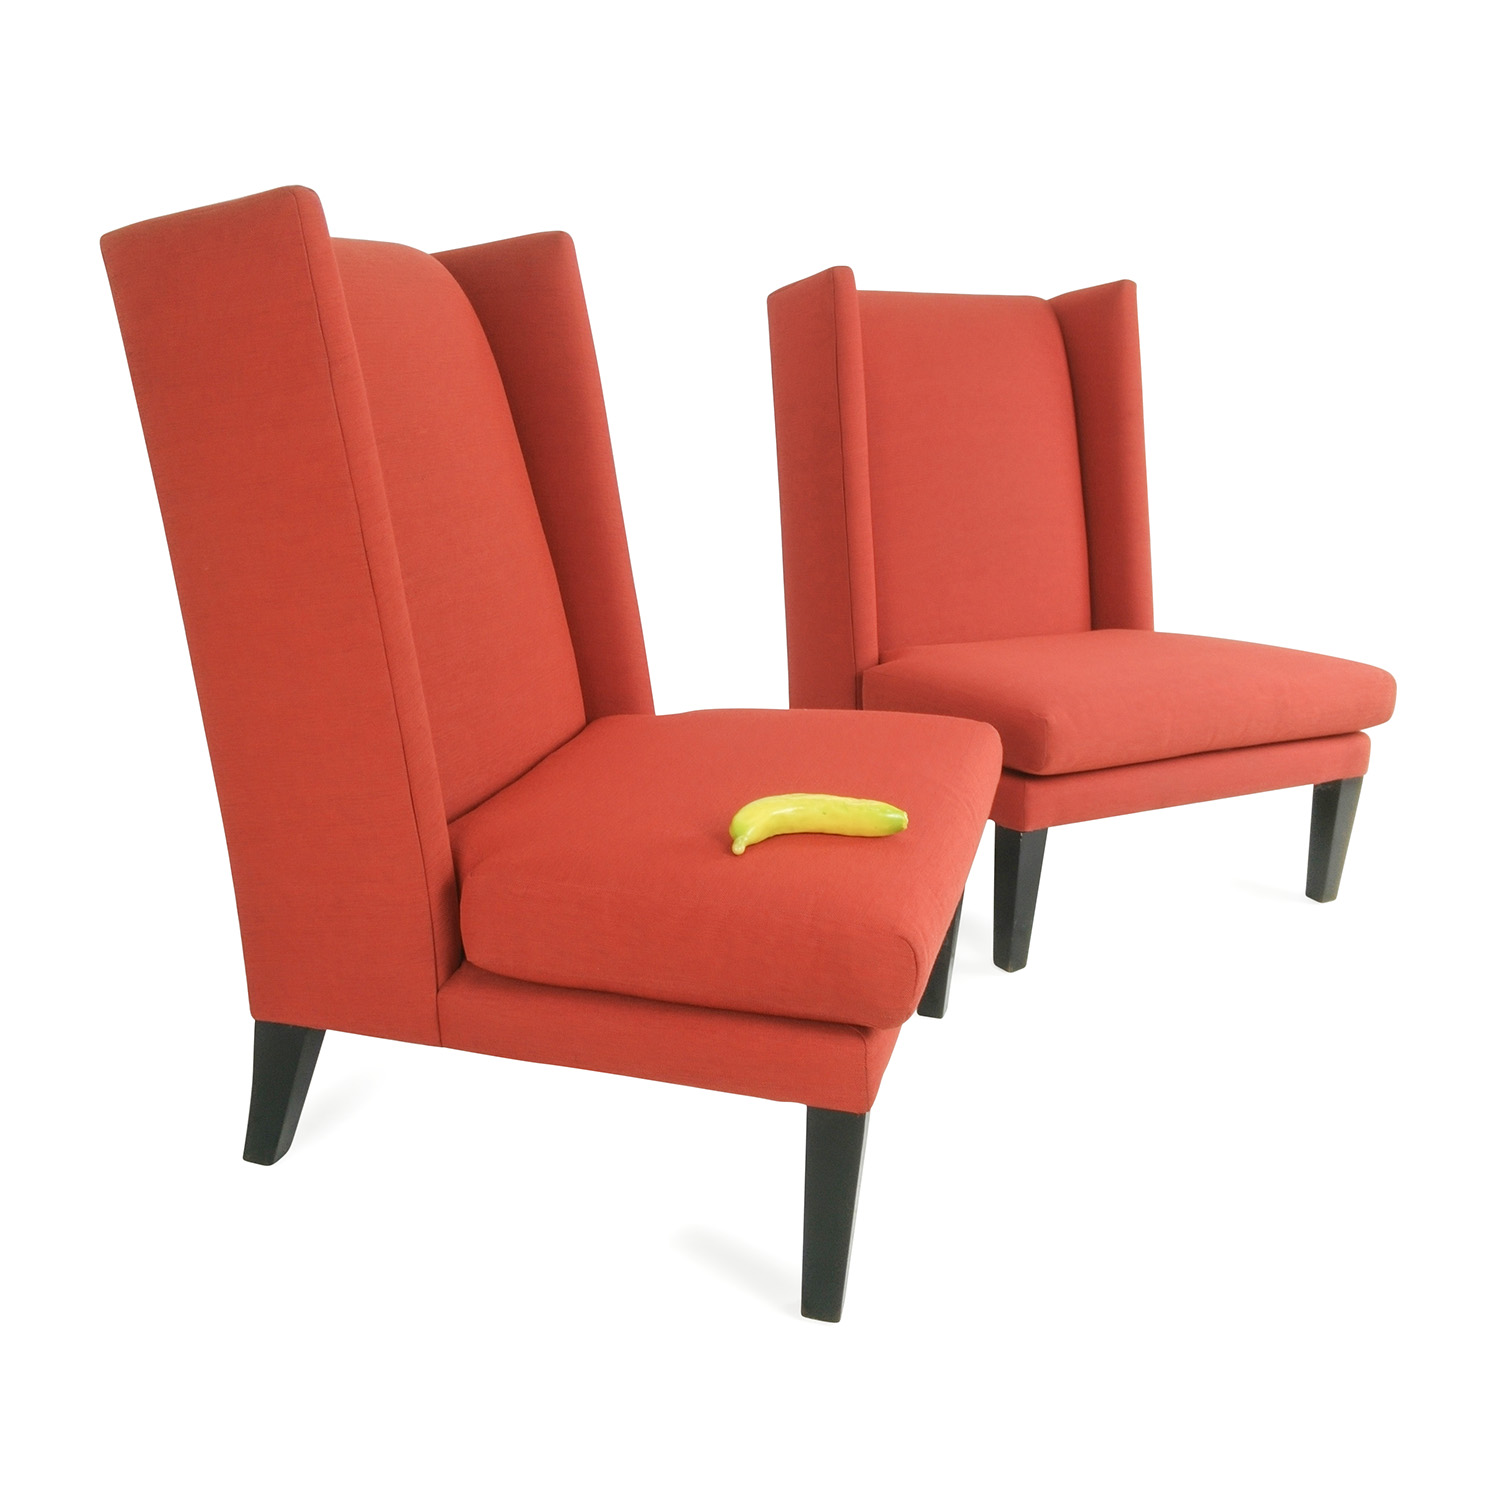 78% OFF CB2 CB2 Red Chairs Chairs